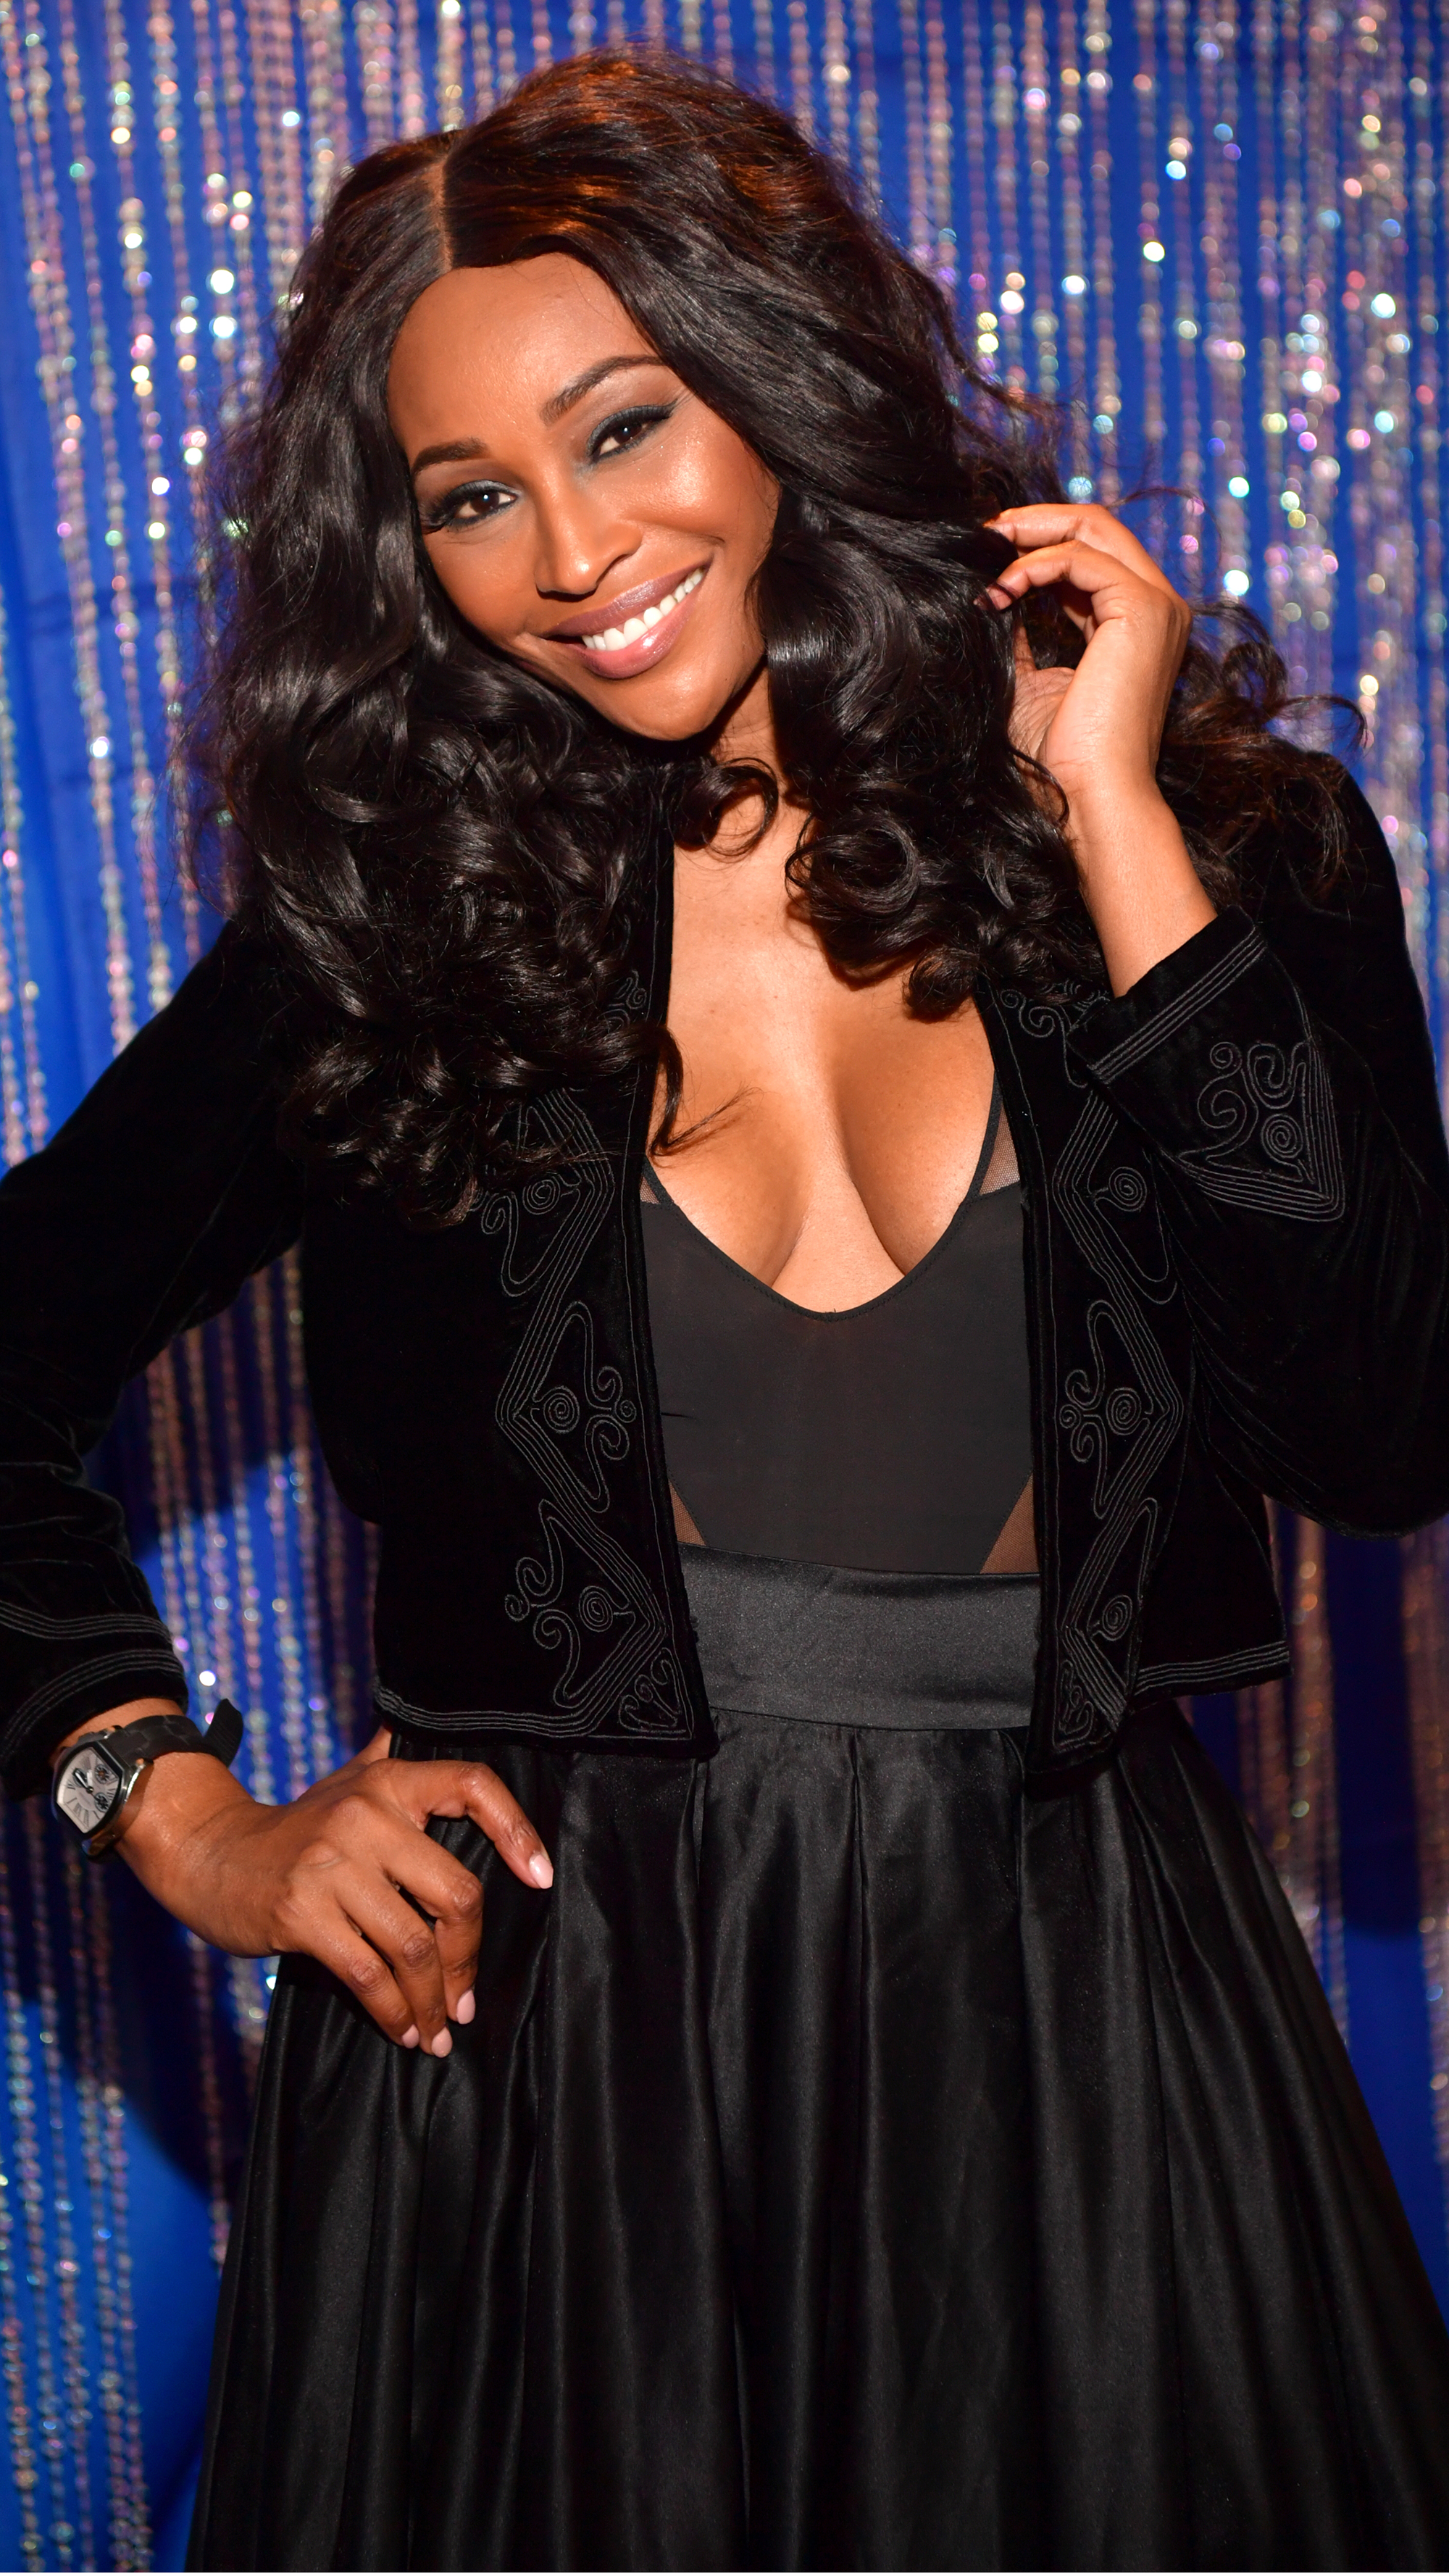 """Celebs Reveal Their Favorite Moments of 2018 - """"I had some good moments,"""" reflects the Real Housewives of Atlanta star. """"I would say as a lover of love, probably meeting my love Mike Hill """" was the best of the year."""